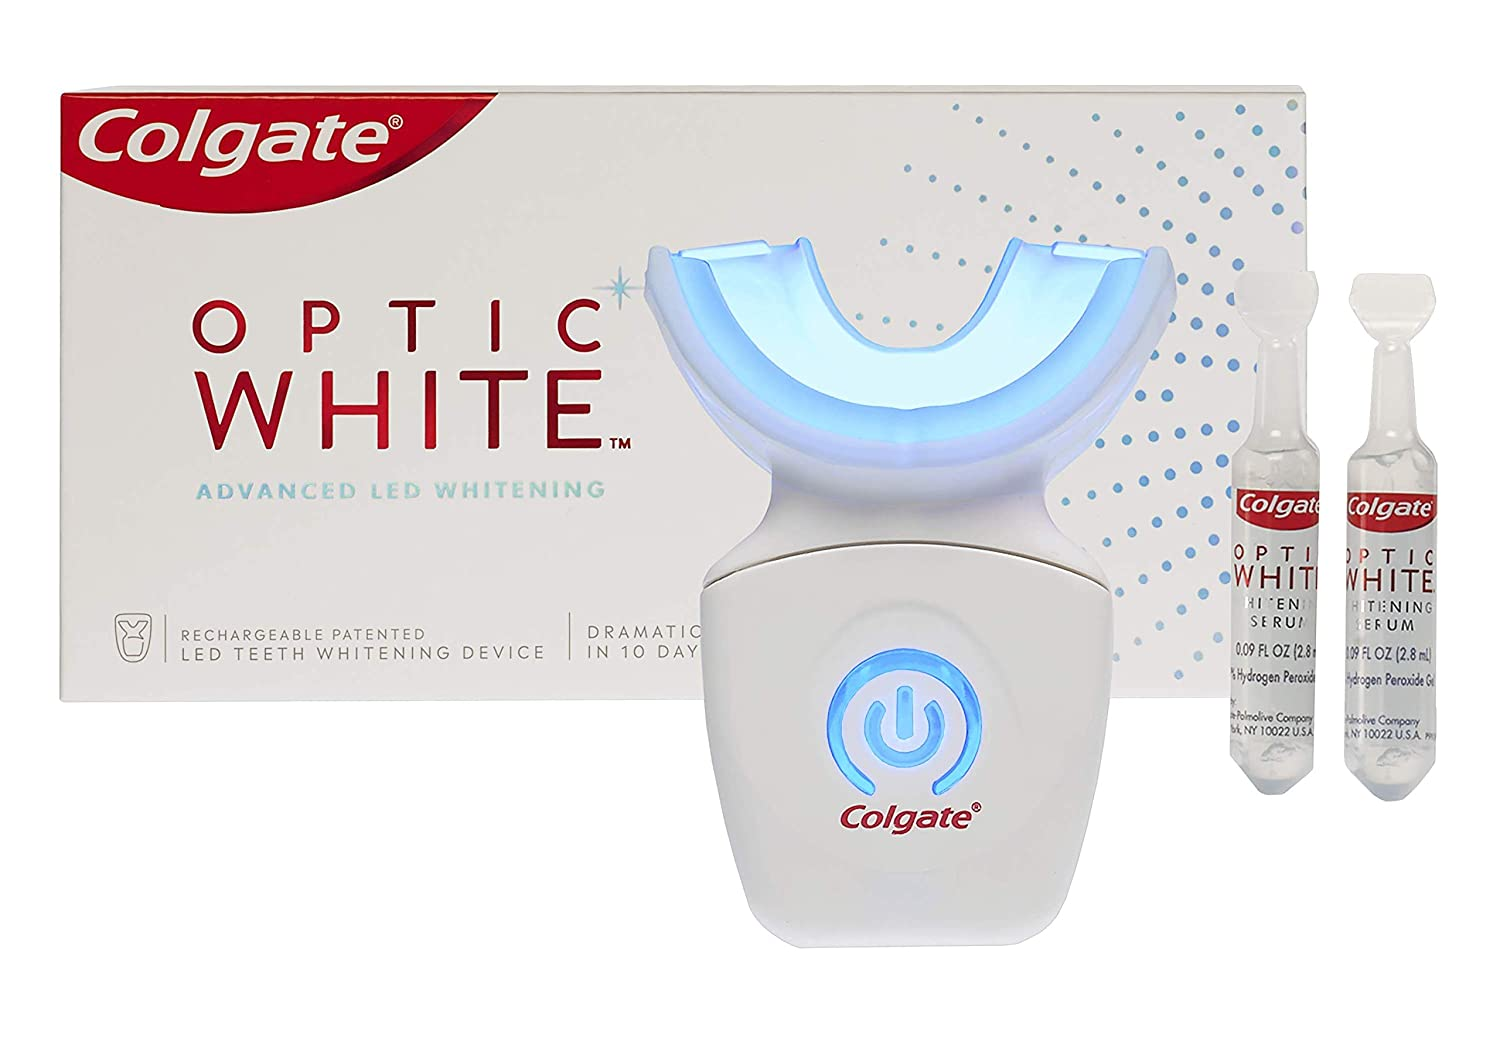 Amazon Com Colgate Optic White At Home Teeth Whitening Kit Led Blue Light Tray 10 Day Treatment 9 Hydrogen Peroxide Whitening Gel Health Personal Care